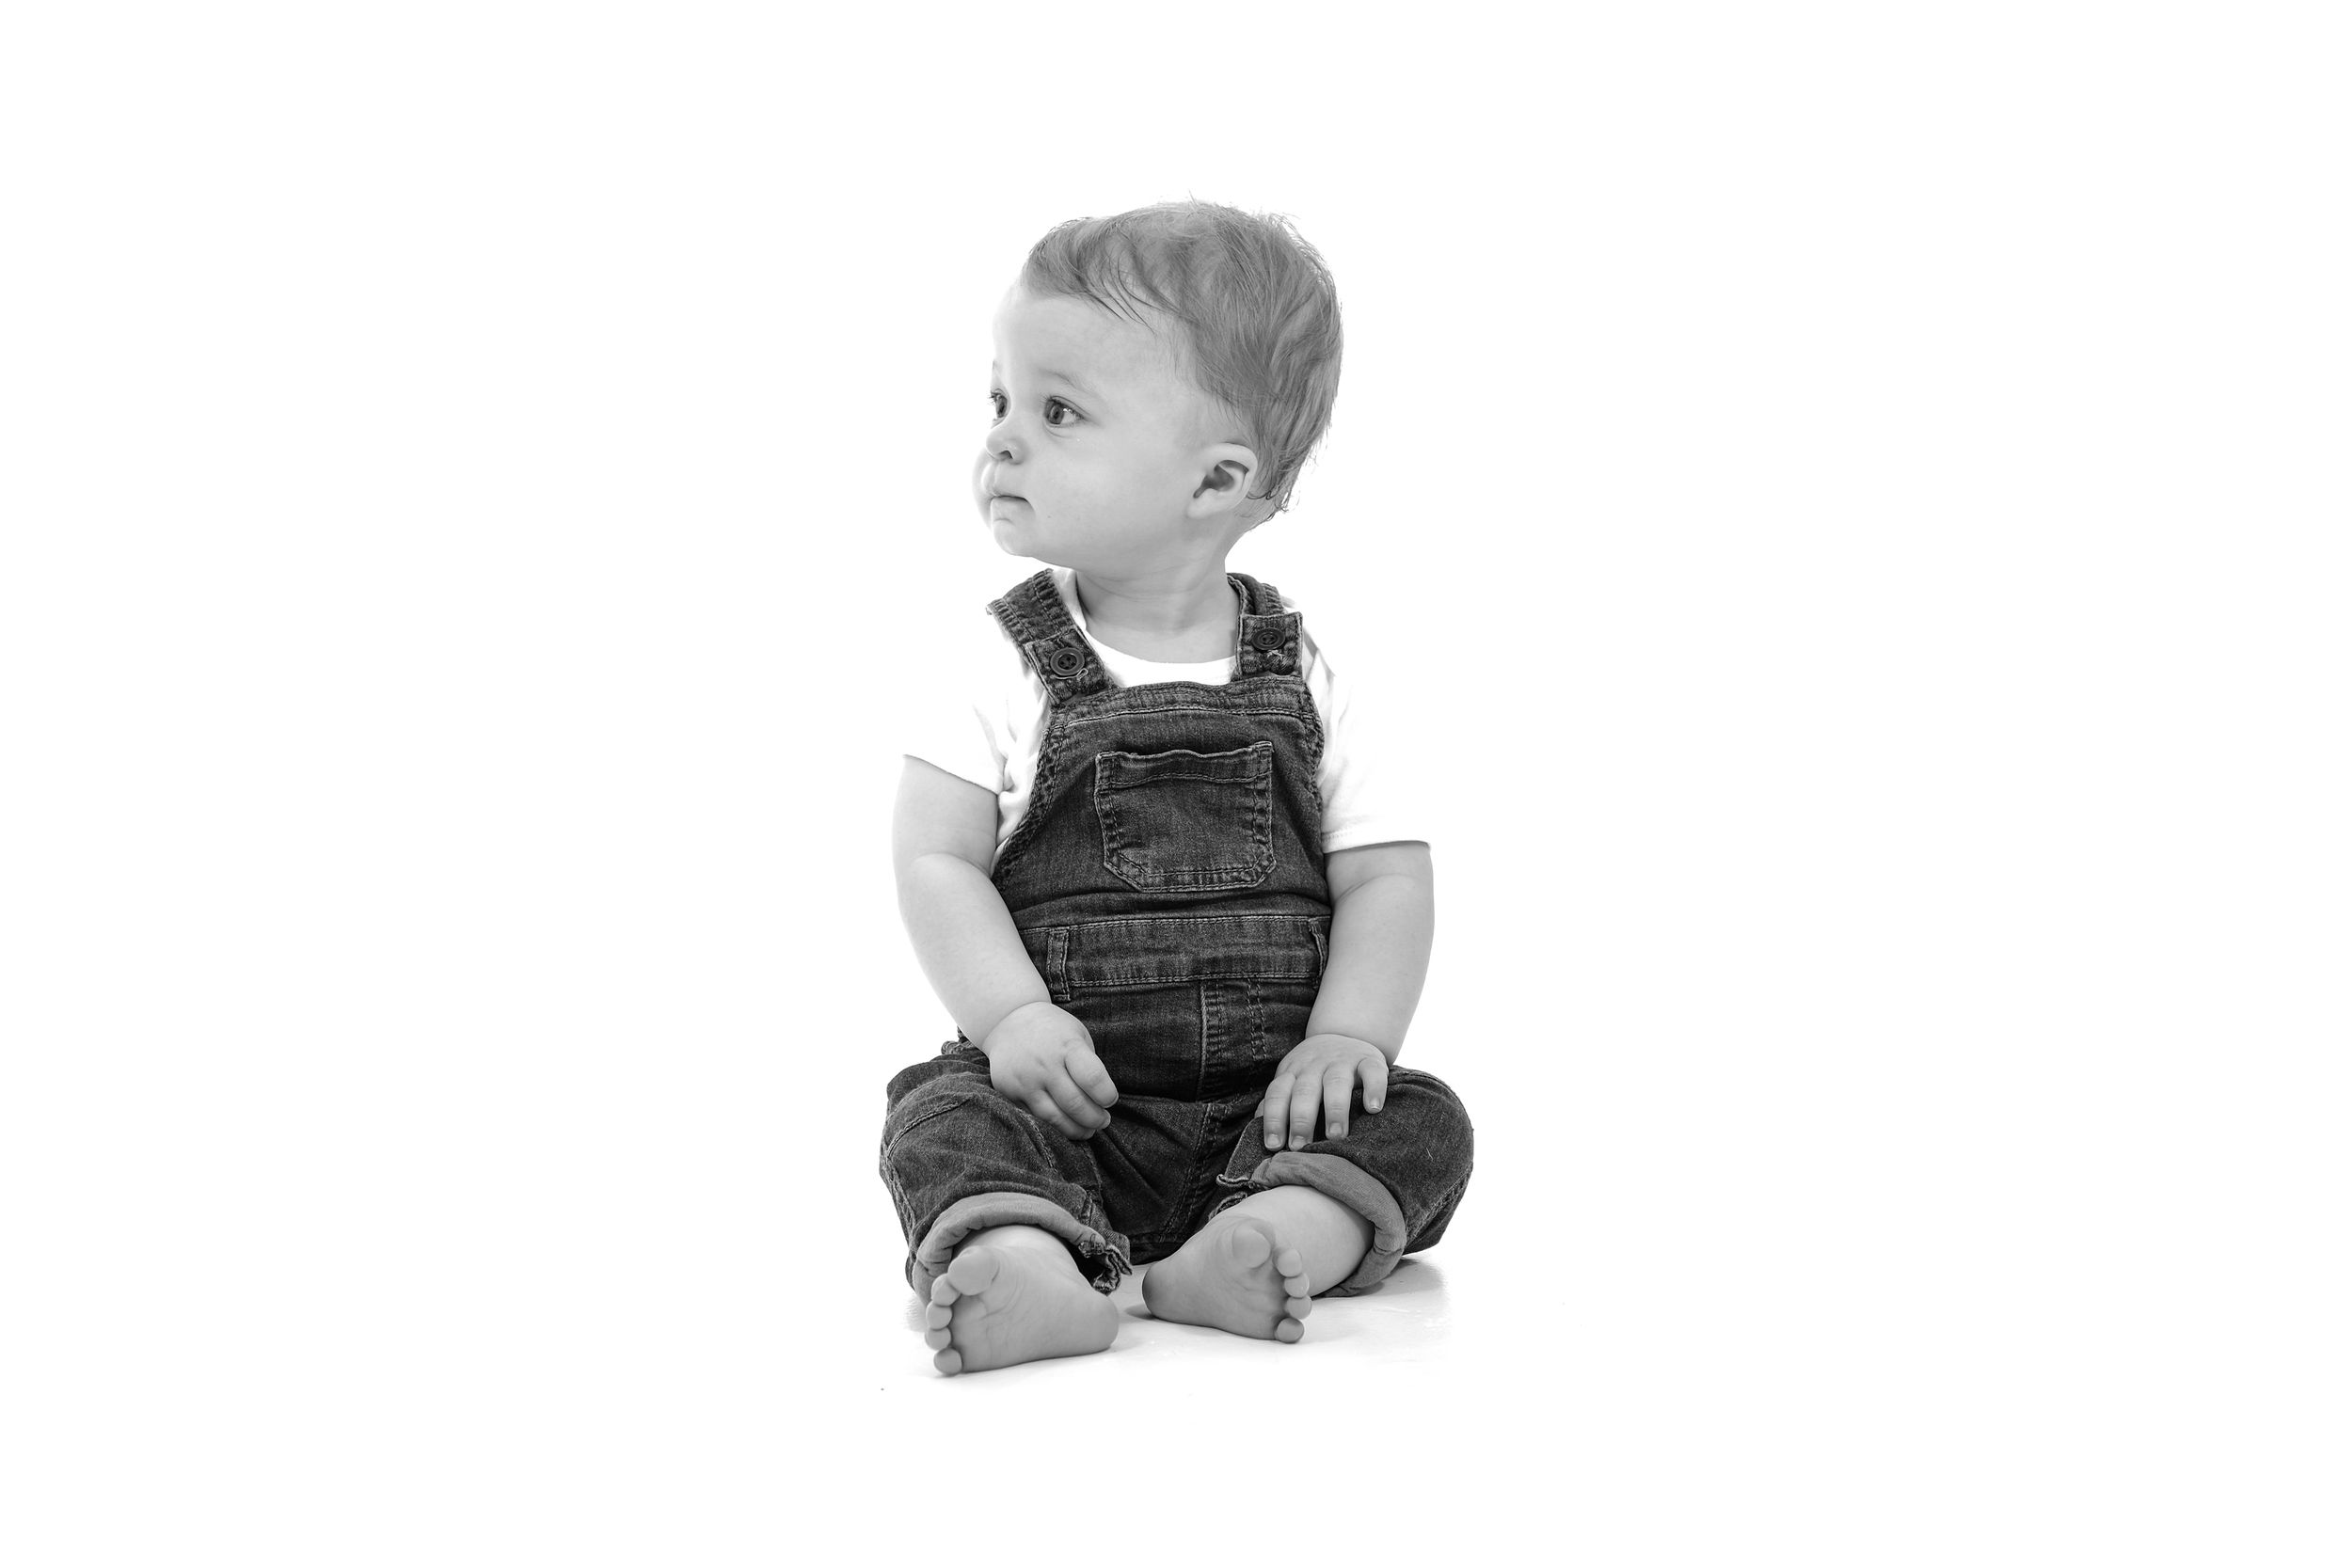 Studio Portrait Witney Photography Black and White Child Family Cute